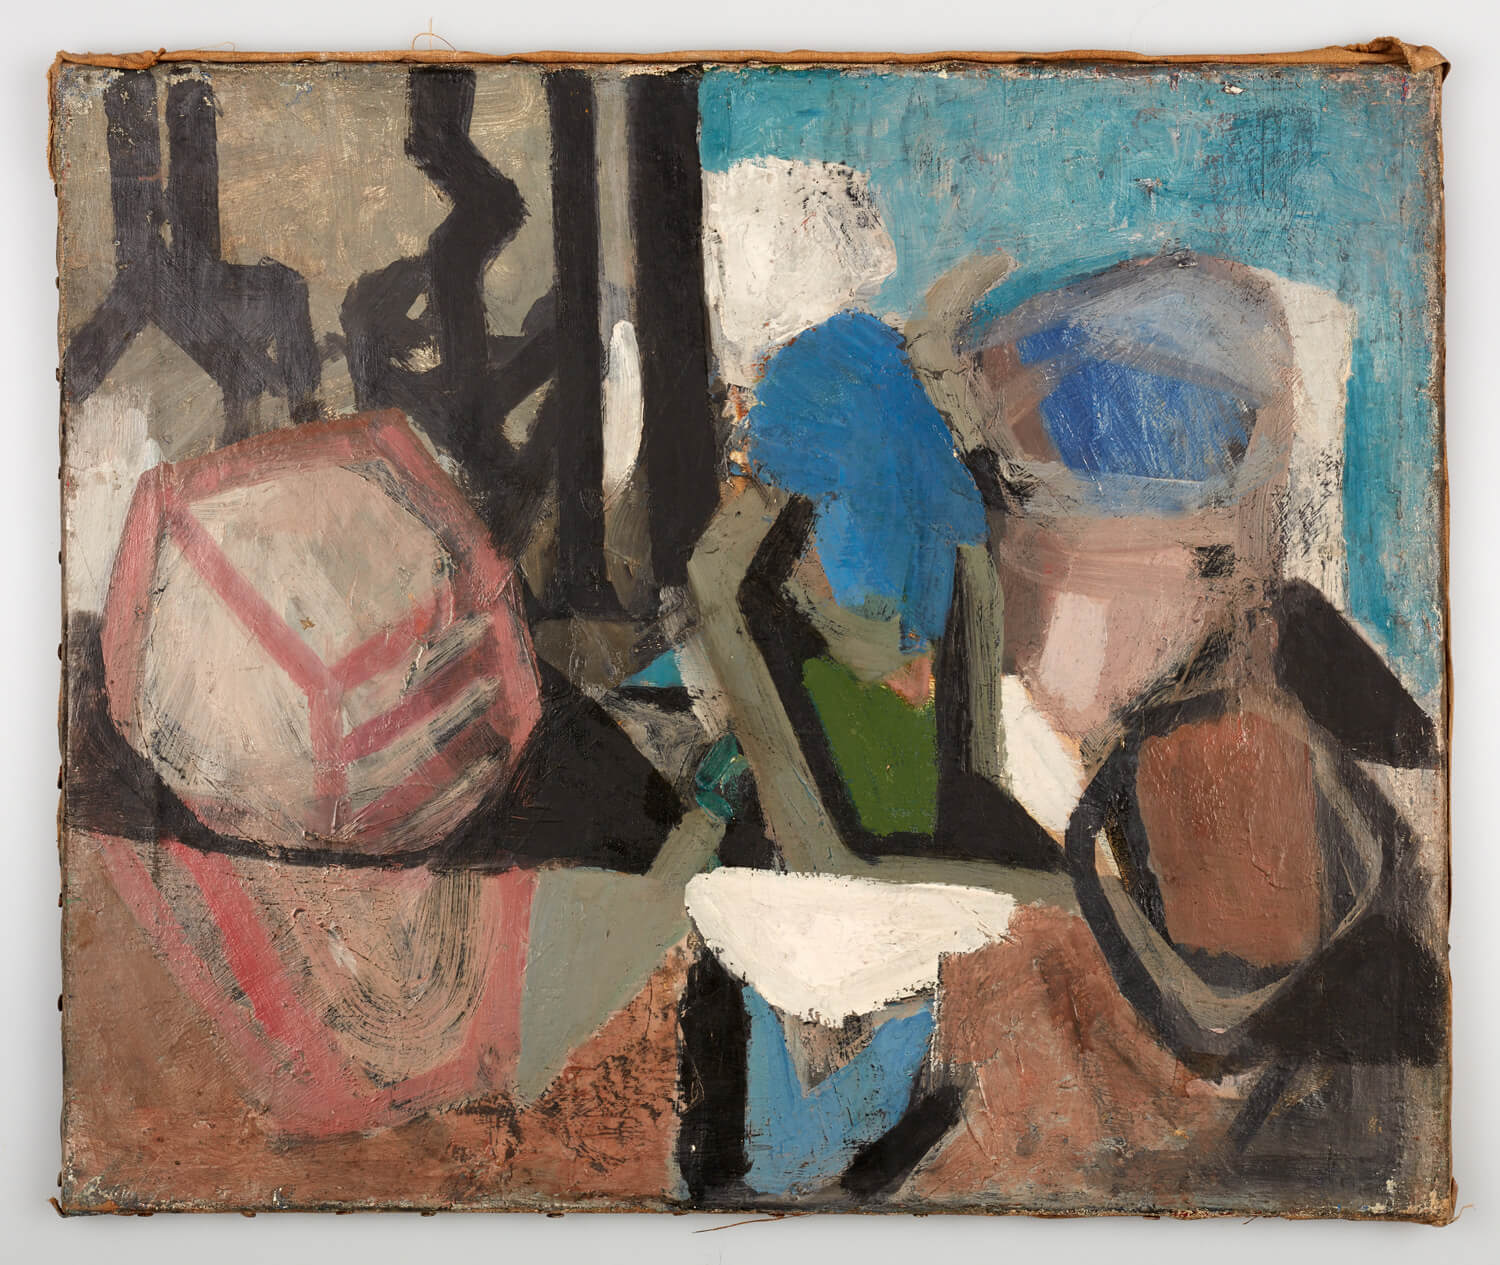 JB190 - Composition - 1950 - 51 x 61 cm - Oil on canvas